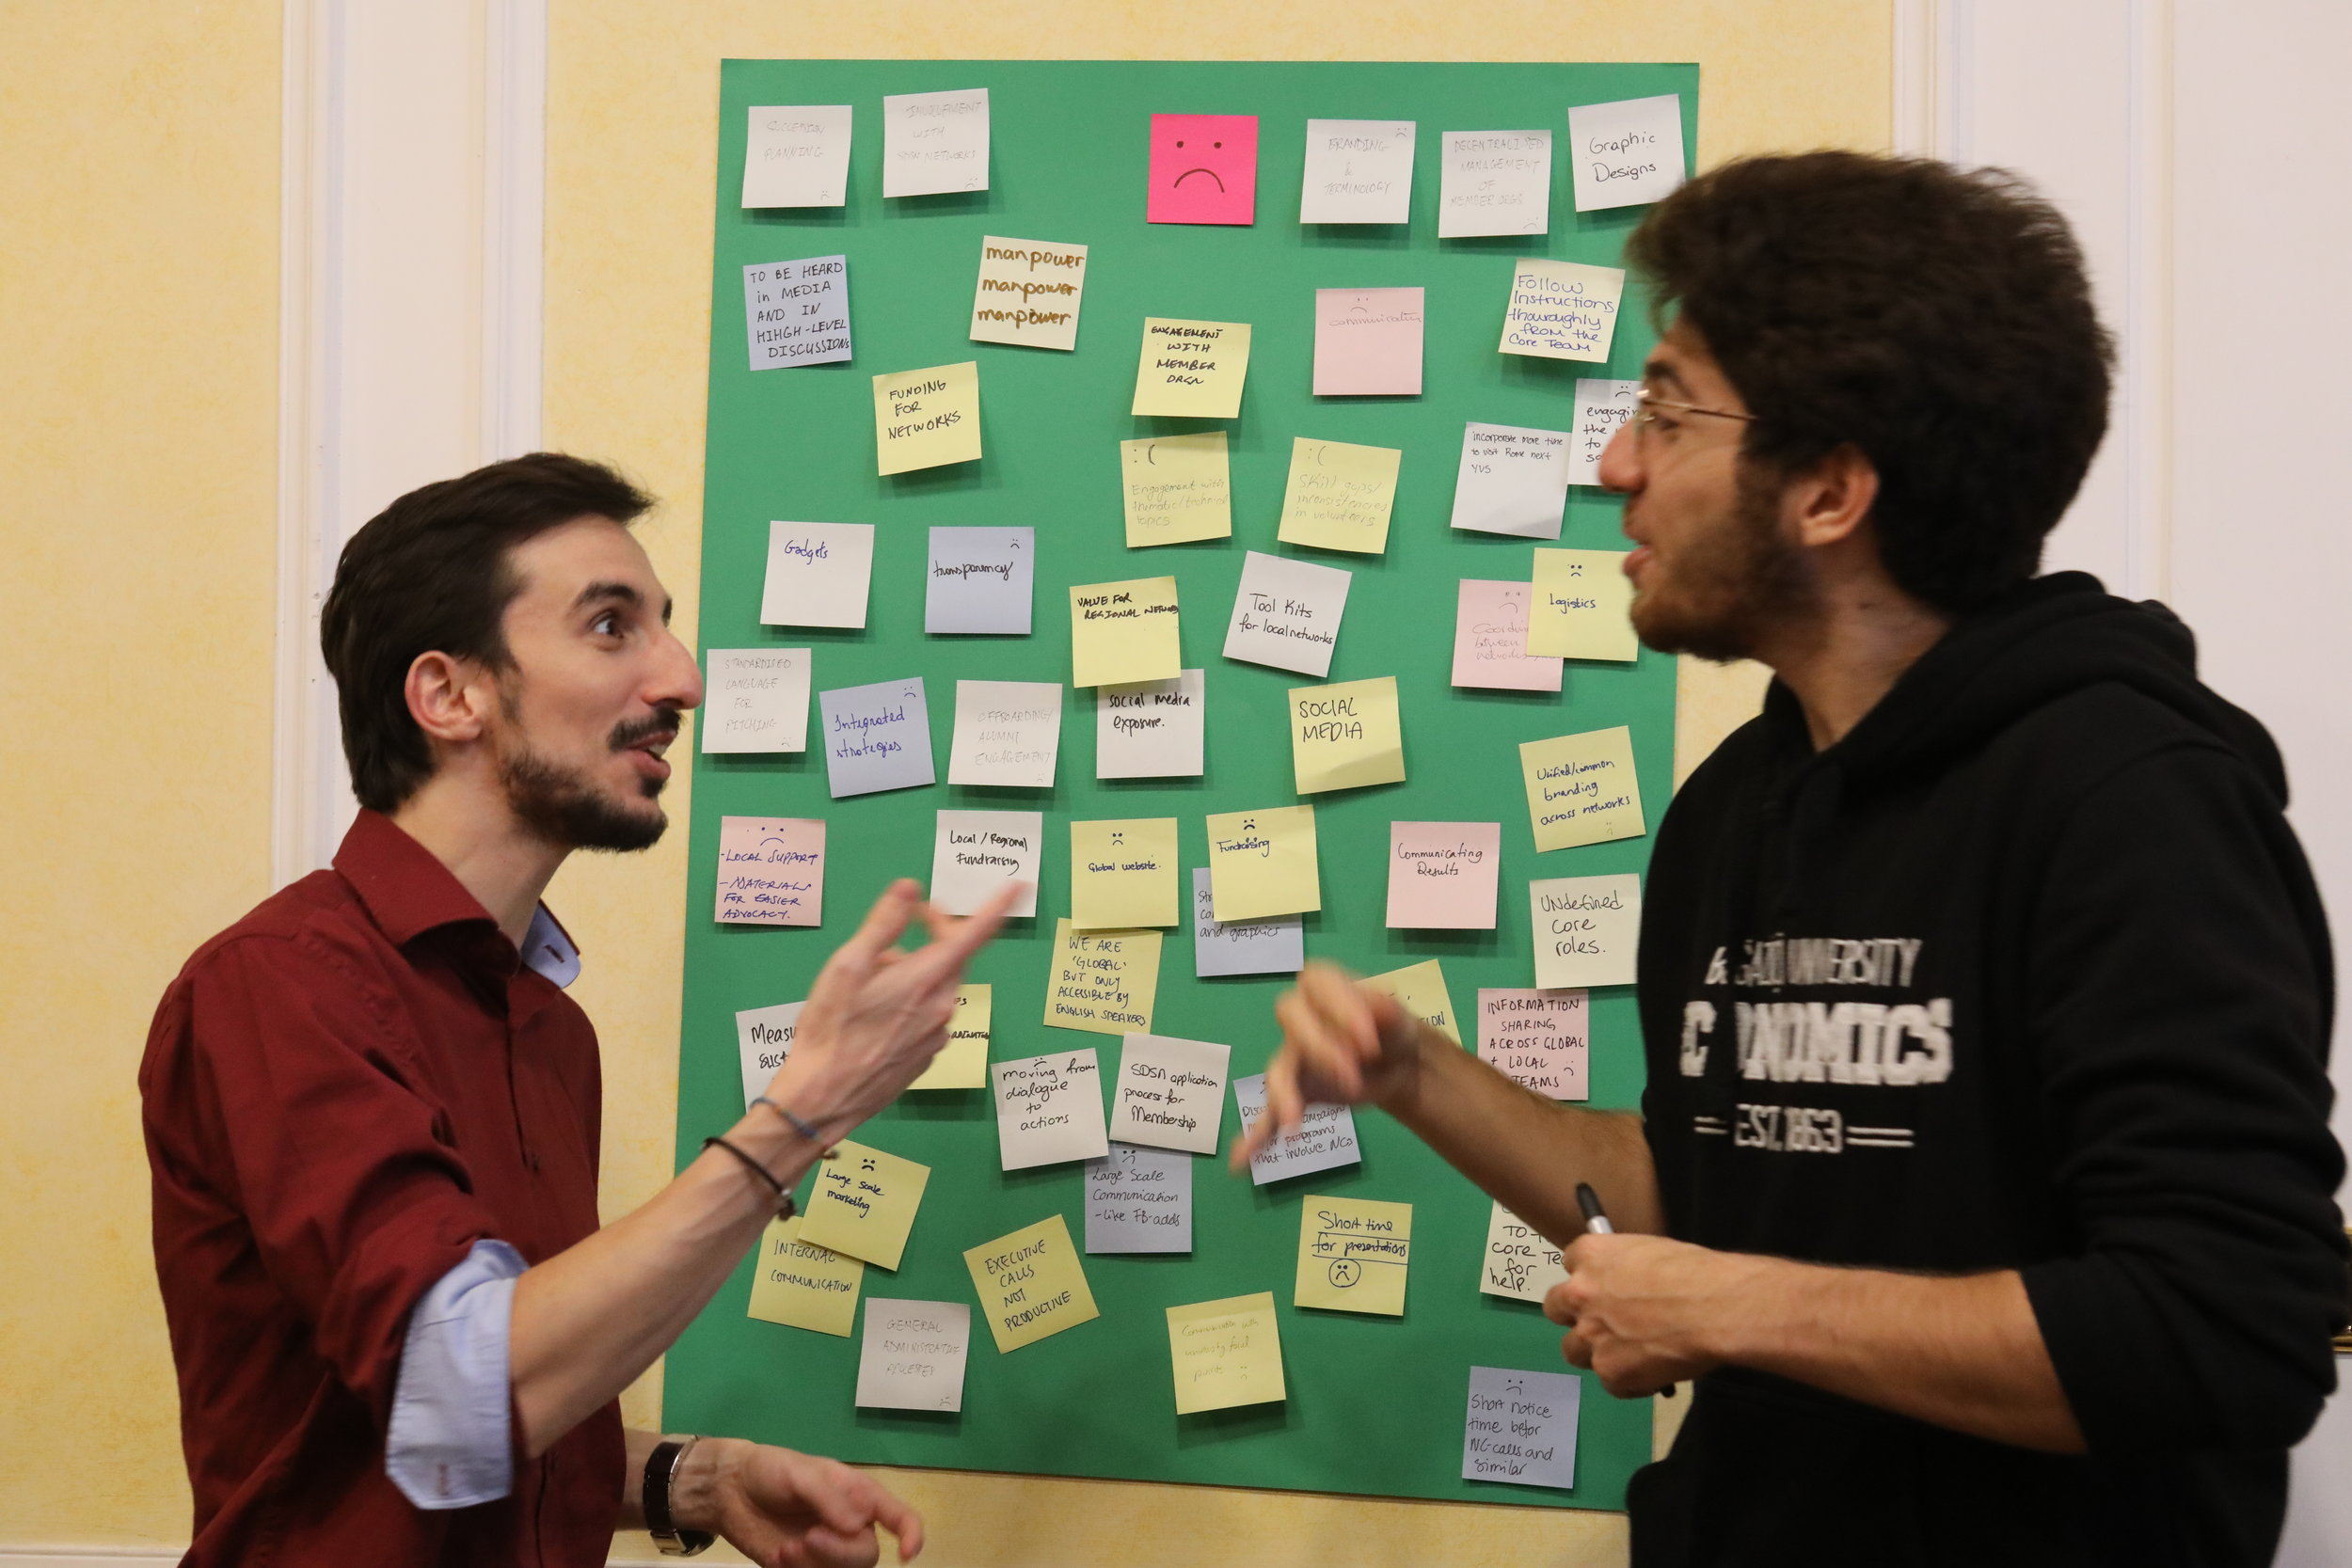 Massimo Gigliotti, from SDSN Mediterranean, and Toygar Akay, from SDSN Turkey, have a friendly disagreement over how to group network goals and objectives.  Photo Credits: Yuntong Man/SDSN Youth